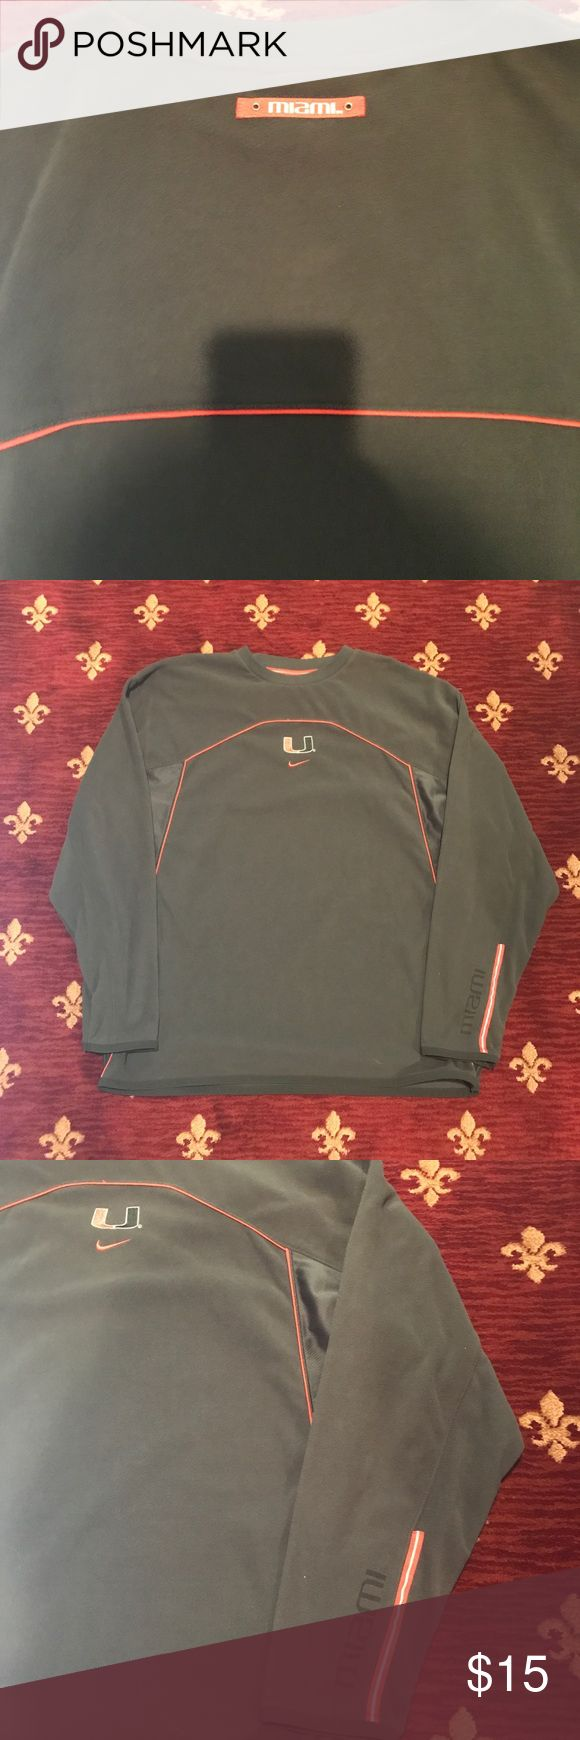 Nike Miami Hurricanes L/S shirt In fantastic condition. It's made out of a fleece like material which makes it very comfortable for use. Nike Shirts Tees - Long Sleeve